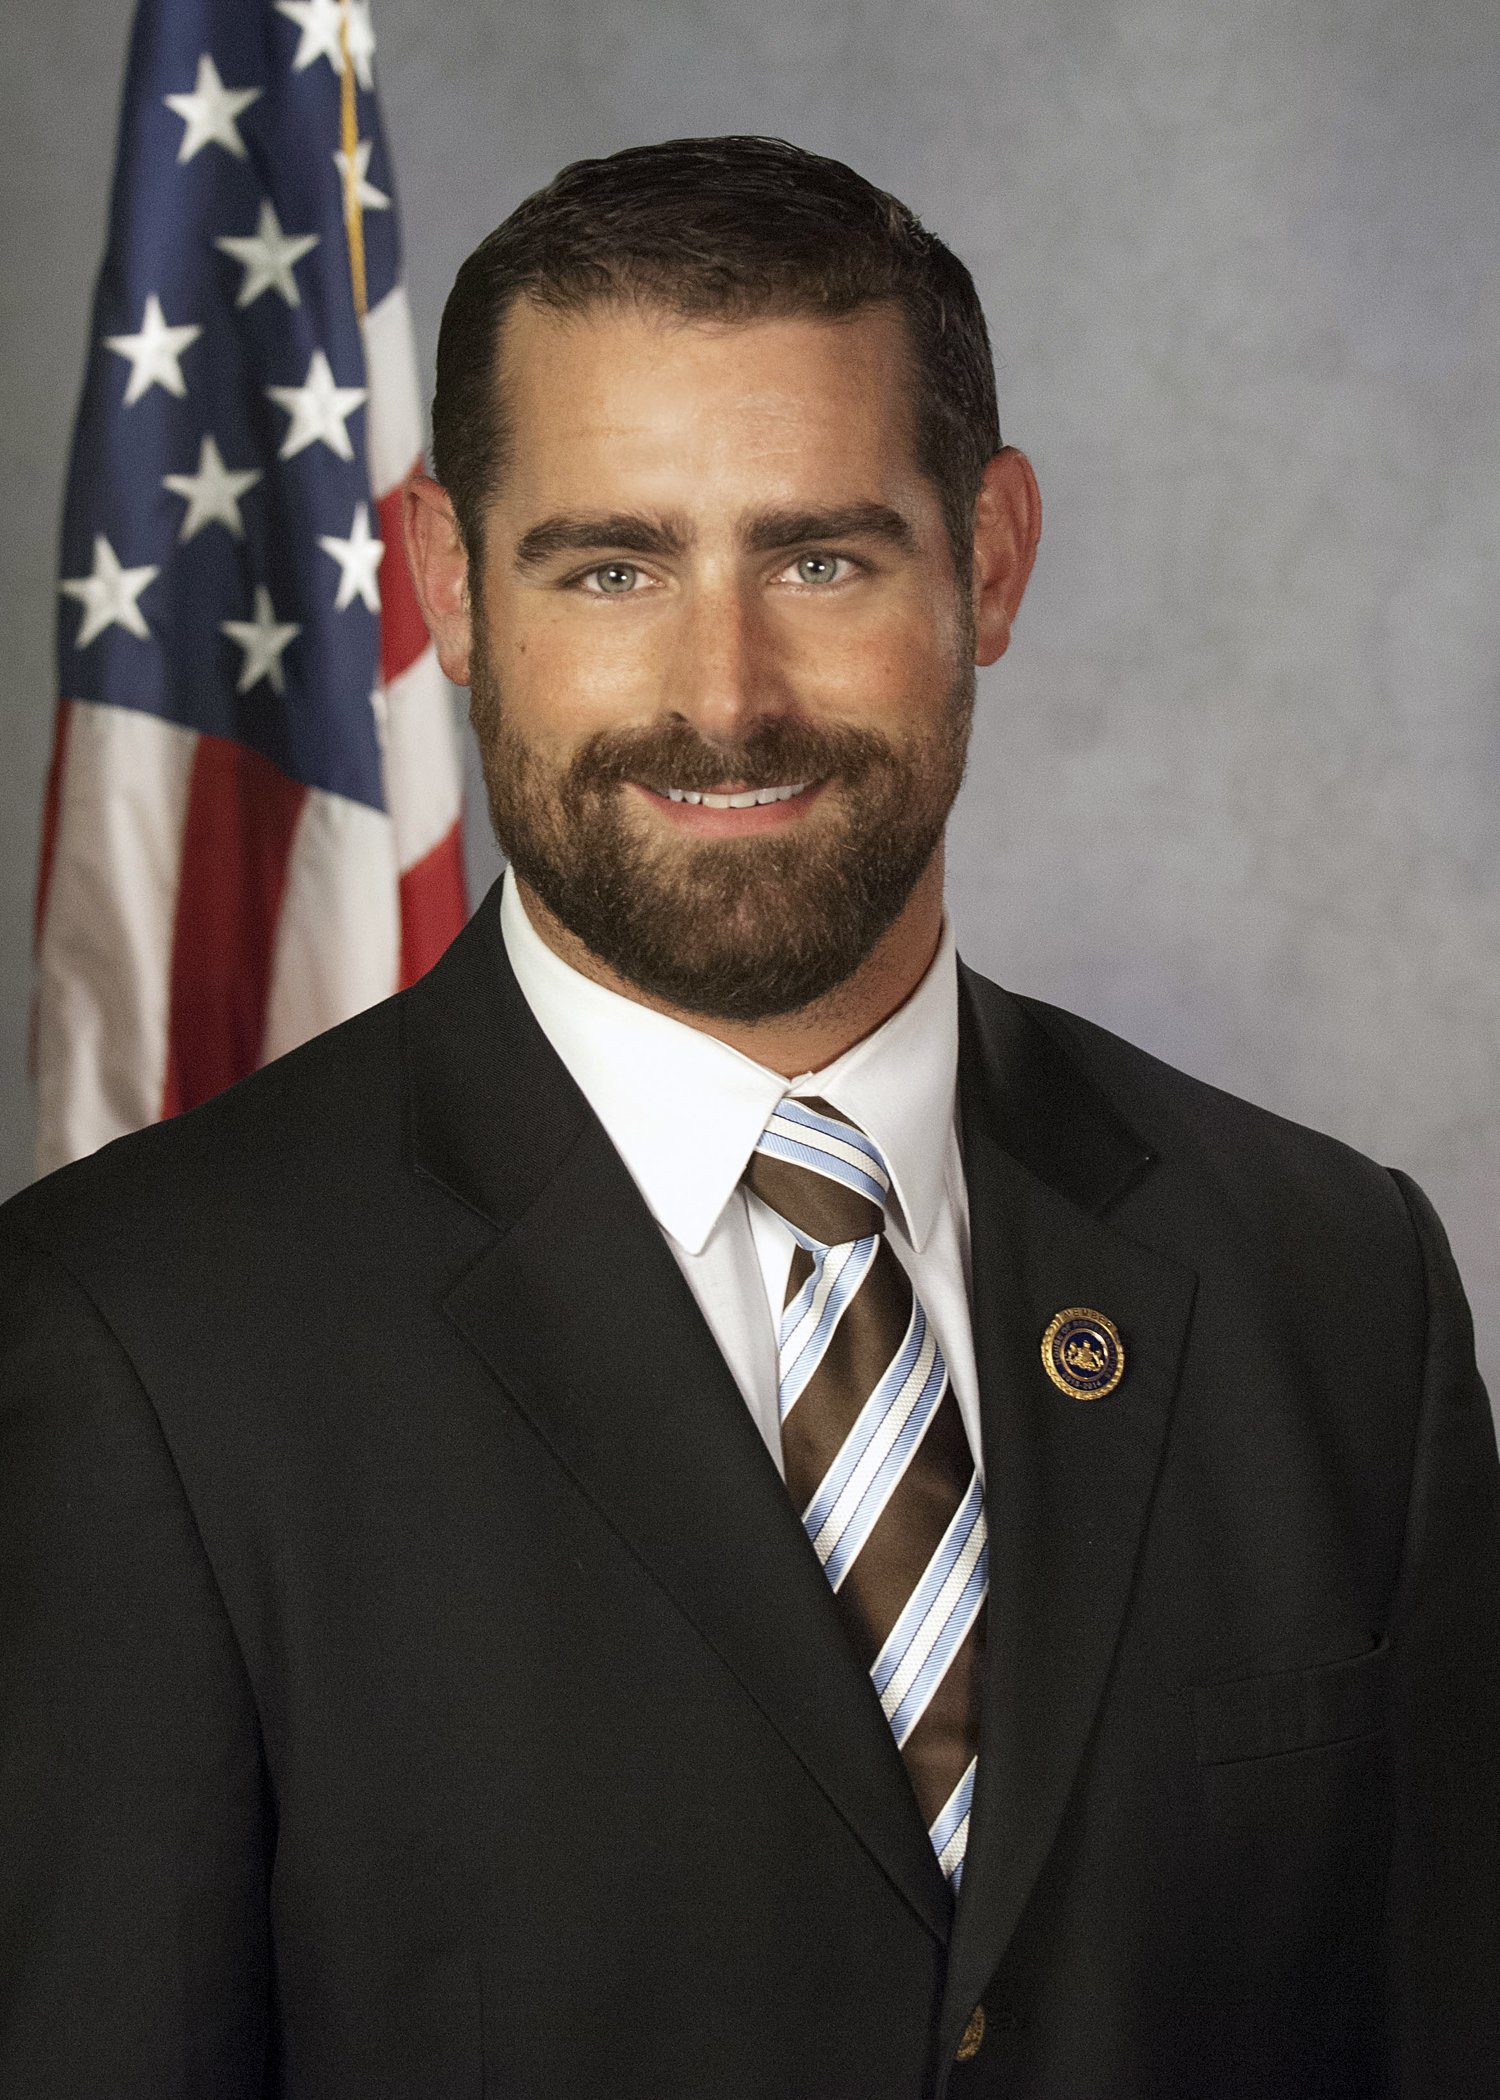 PA Rep. Brian Sims. Photo courtesy of the Office of Representative Brian Sims.